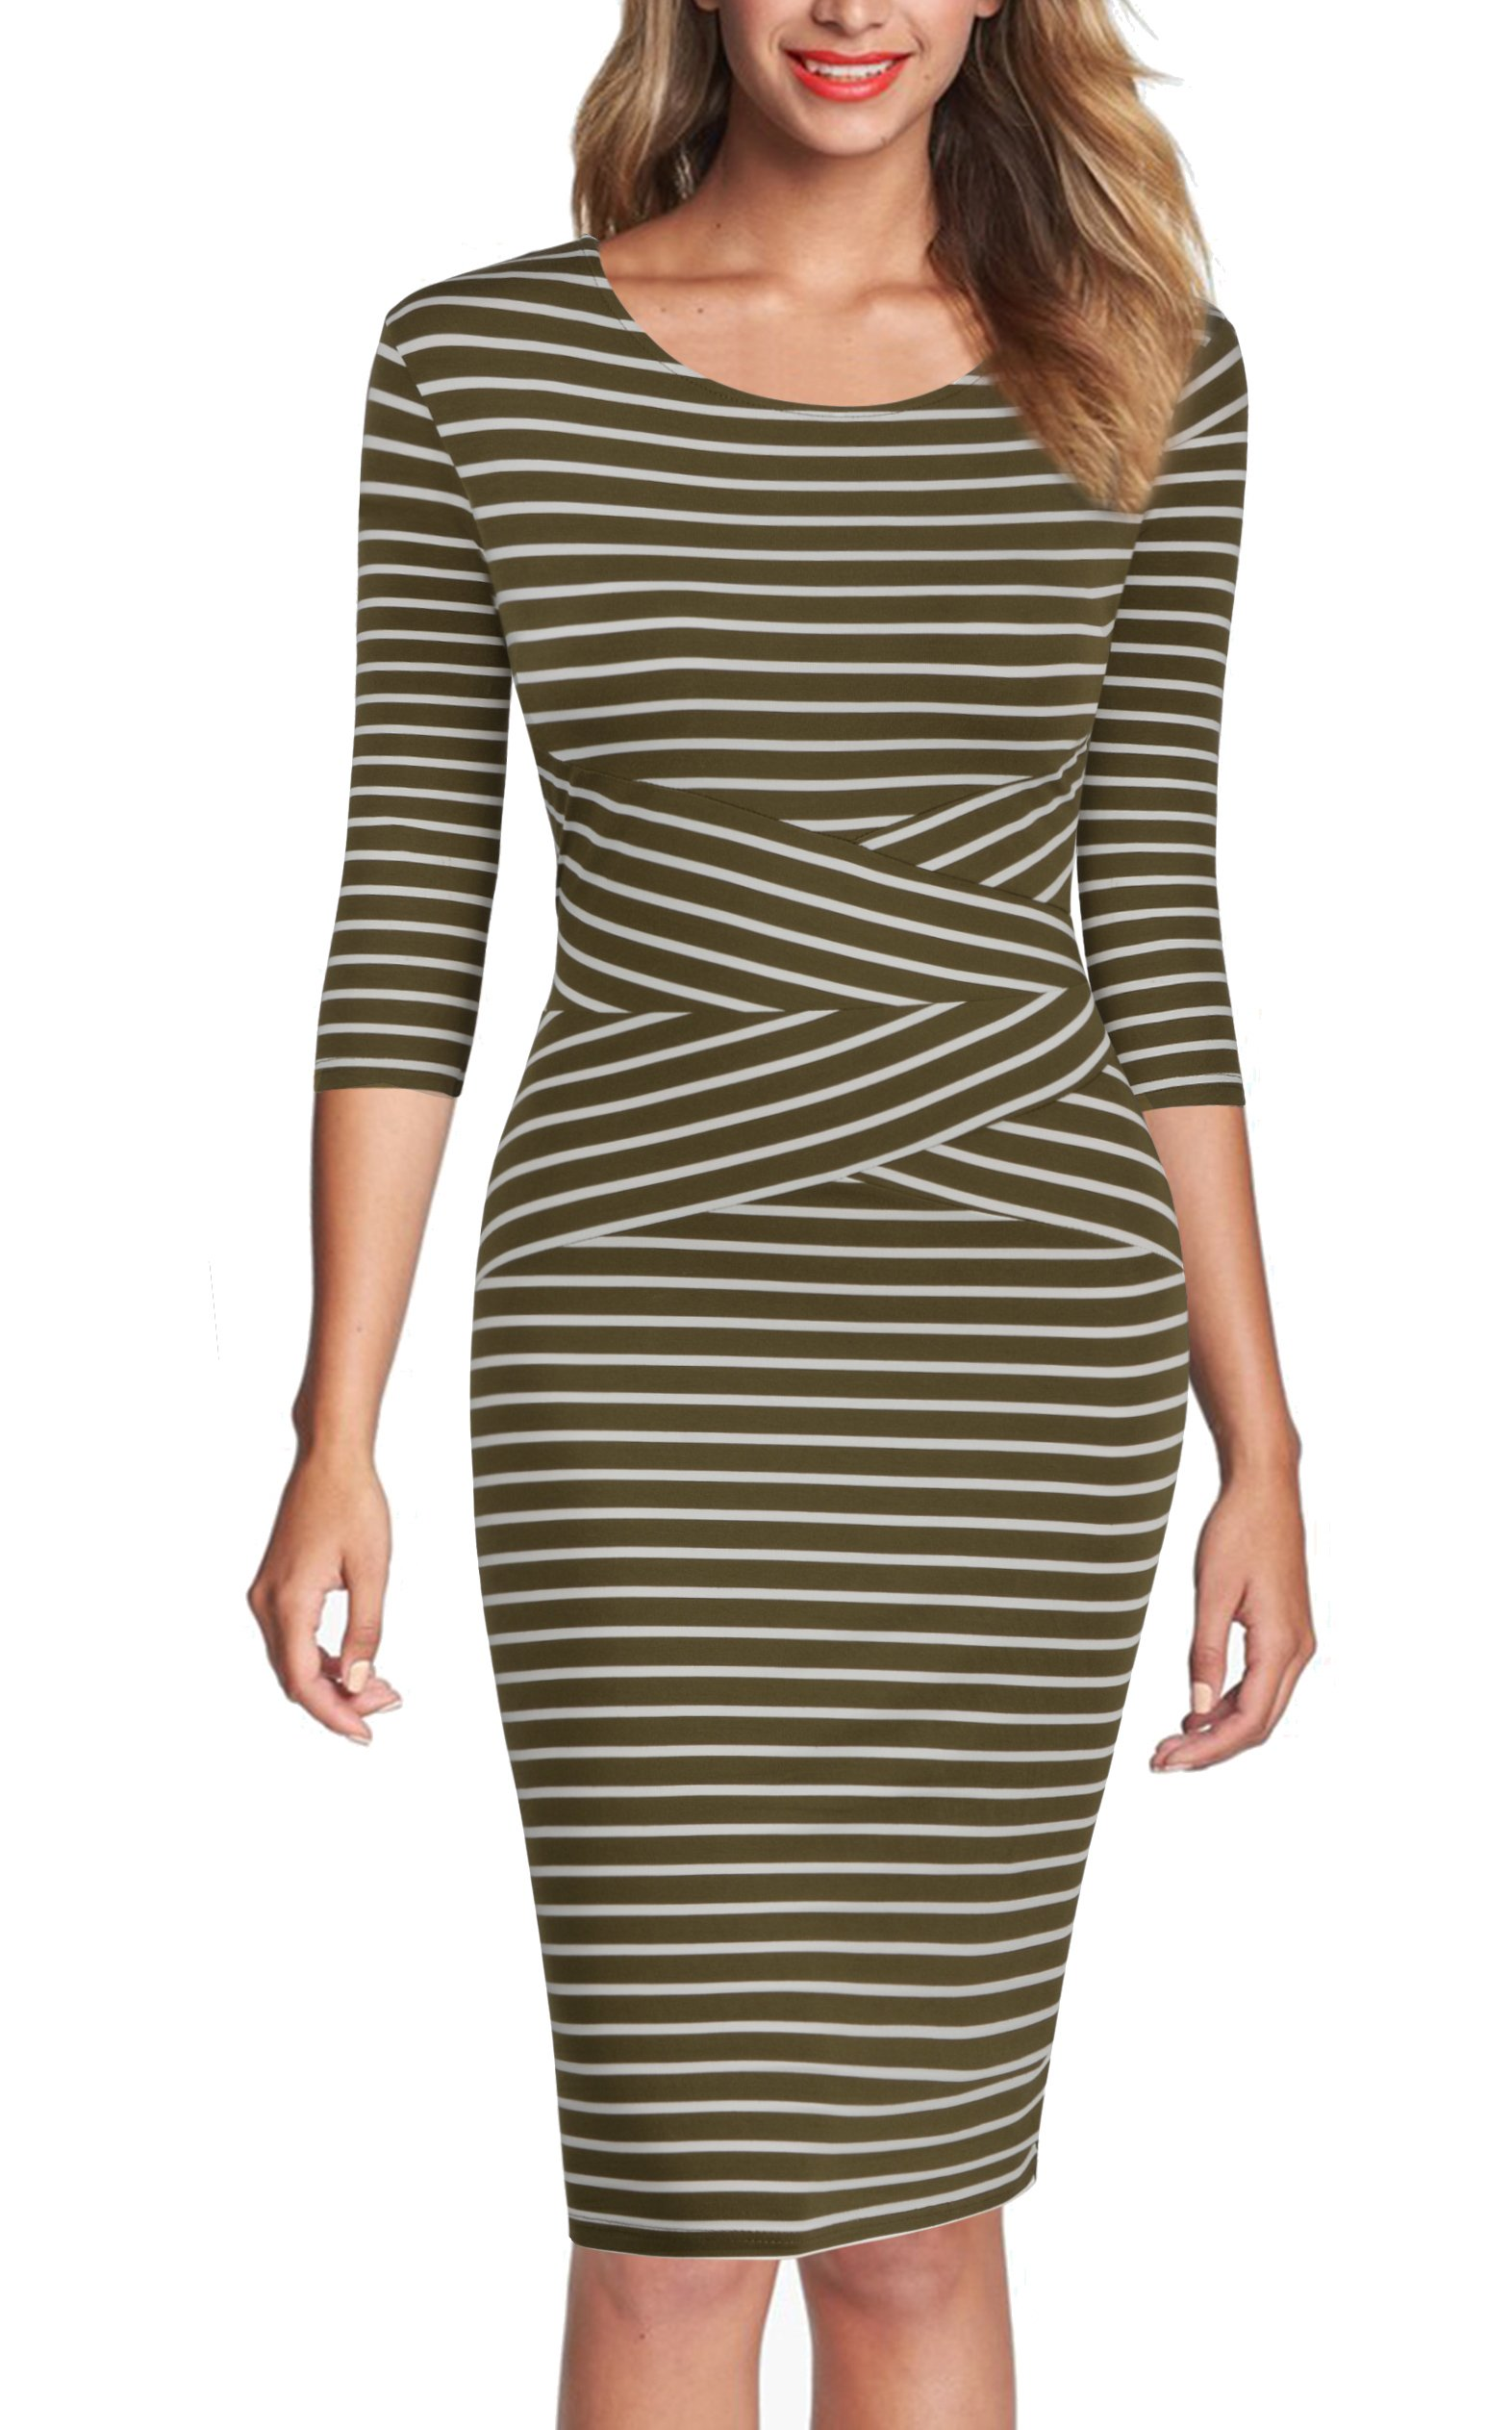 REPHYLLIS Women 3/4 Sleeve Striped Wear to Work Business Cocktail Pencil Dress (Small, Armygreen) by REPHYLLIS® (Image #4)